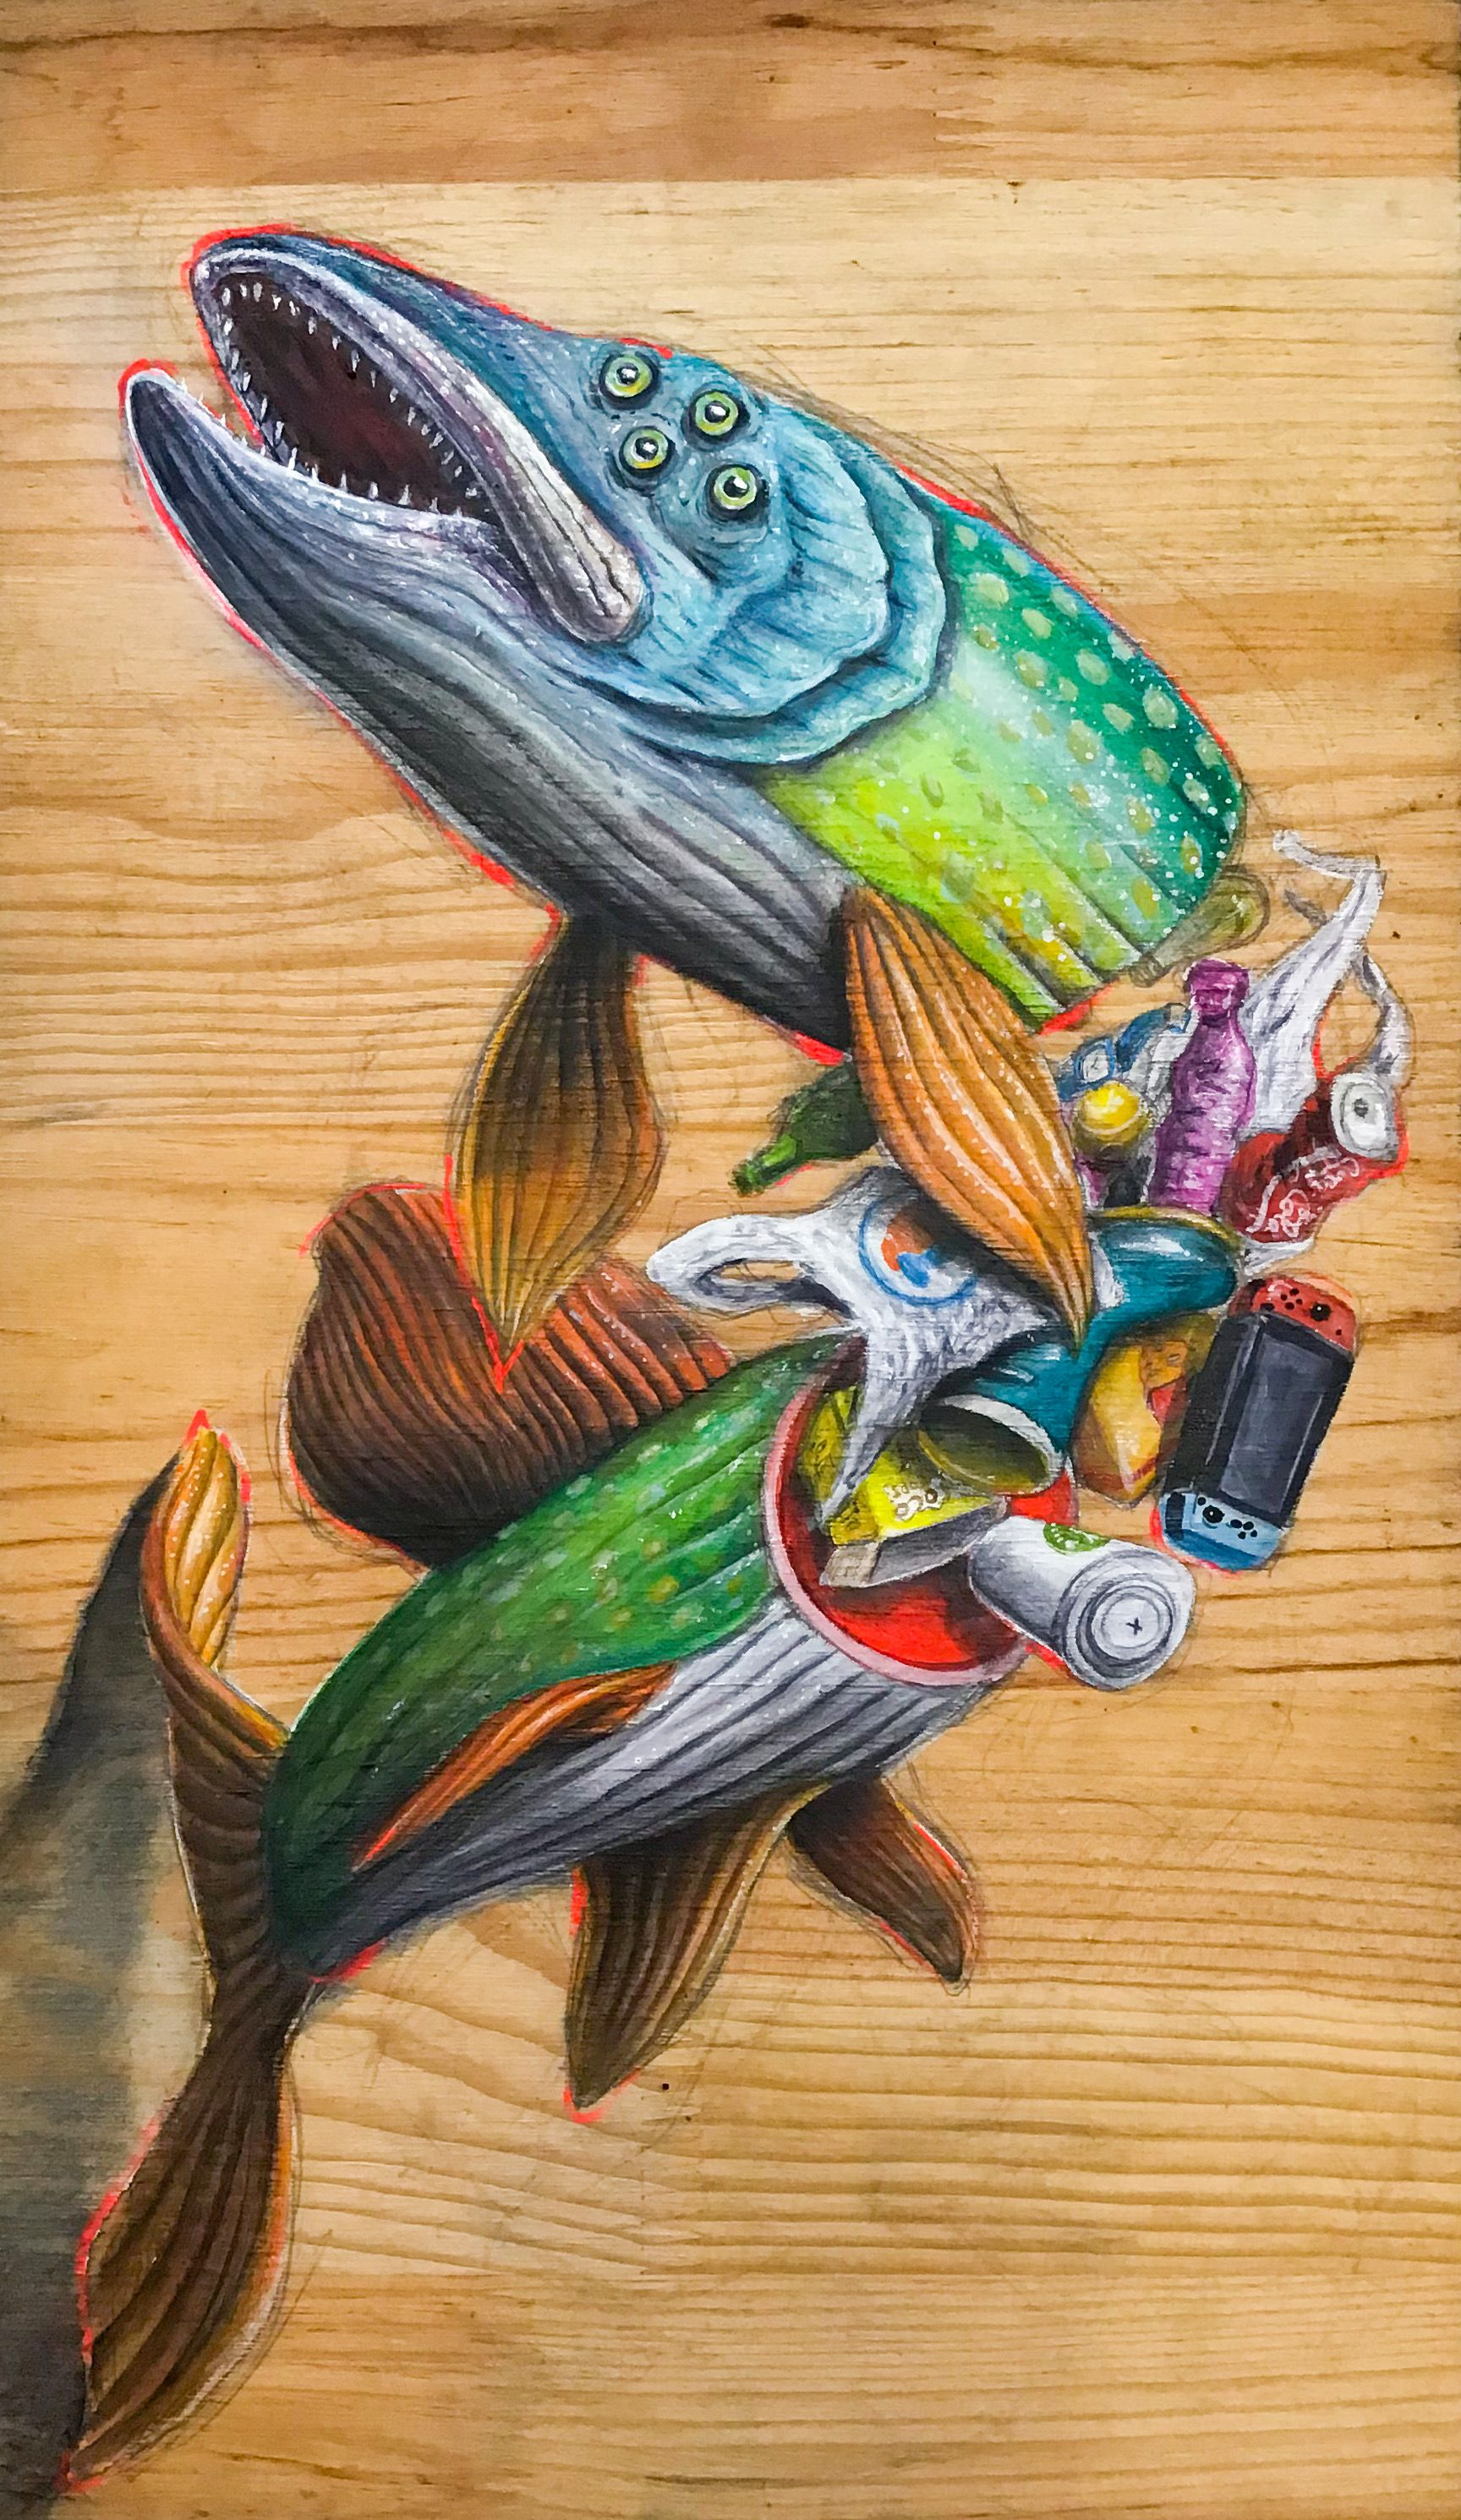 Technique mixte sur bois - 2019 - série: 7ème Continent | #fish #art #artist #paintonwood #painting